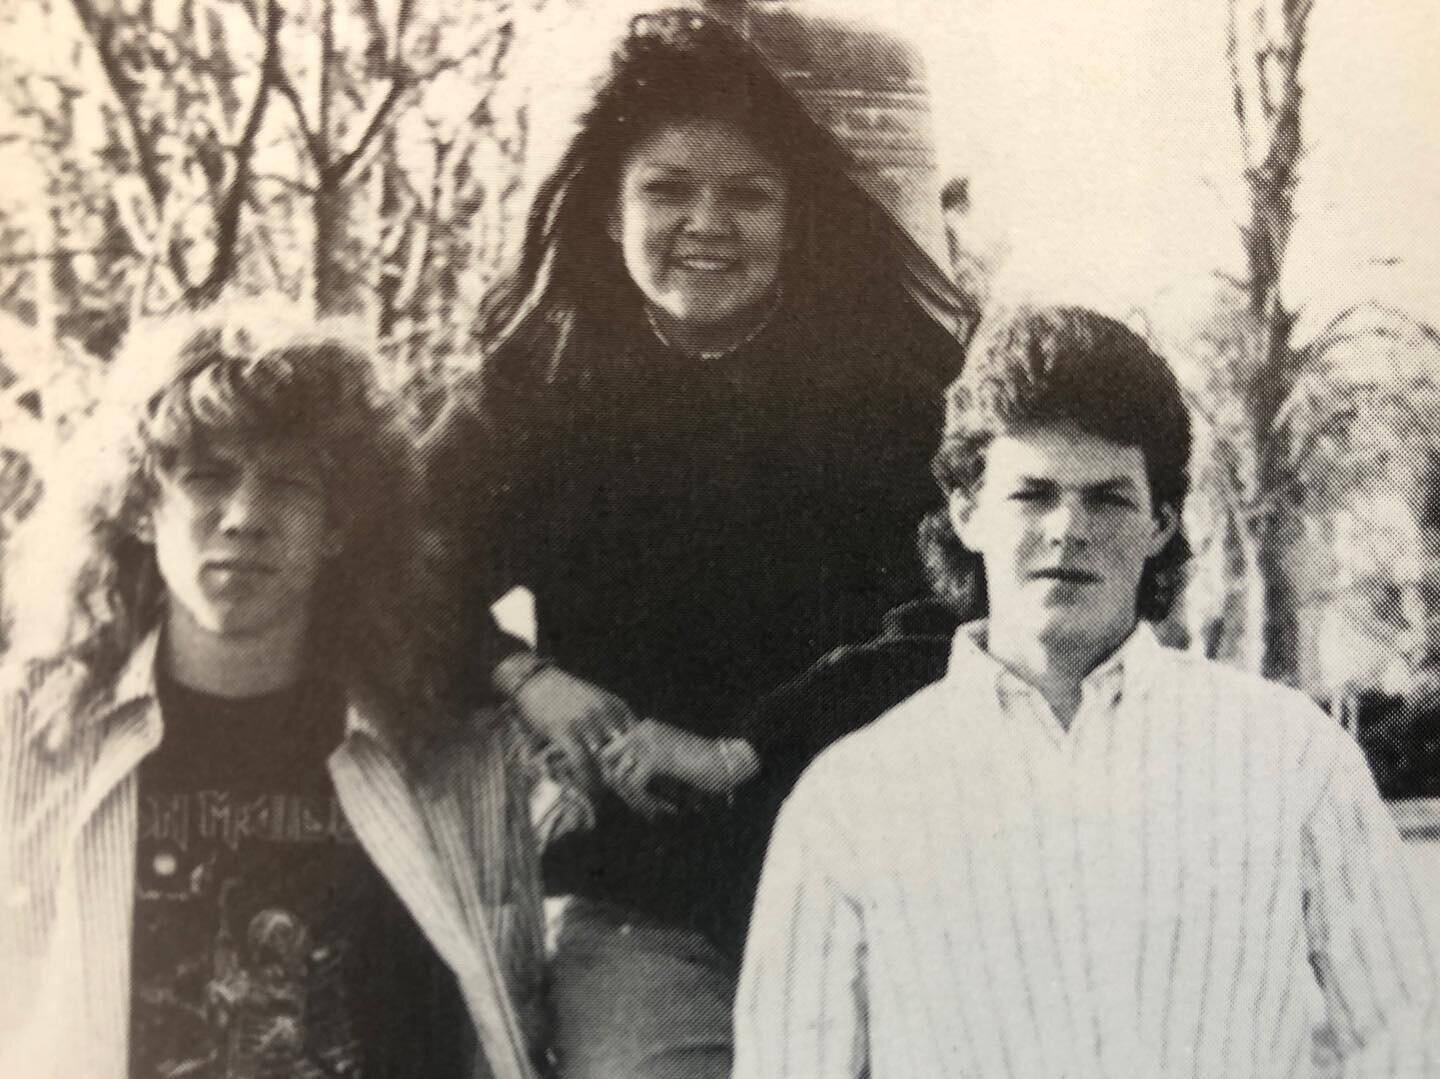 Tonight is the night for our alumni of the 1980's! We hope you join us on Wasatch Connect tonight! Link in bio . We look at the 1988 yearbook as we get ready to see our alumni of the 1980's! . Do you see yourself or a classmate? Leave a comment and let us know! . See you tonight! . #wasatchacademy #wasatchconnect #watigers @watigers #virtualreunion #boardingschoolmemories